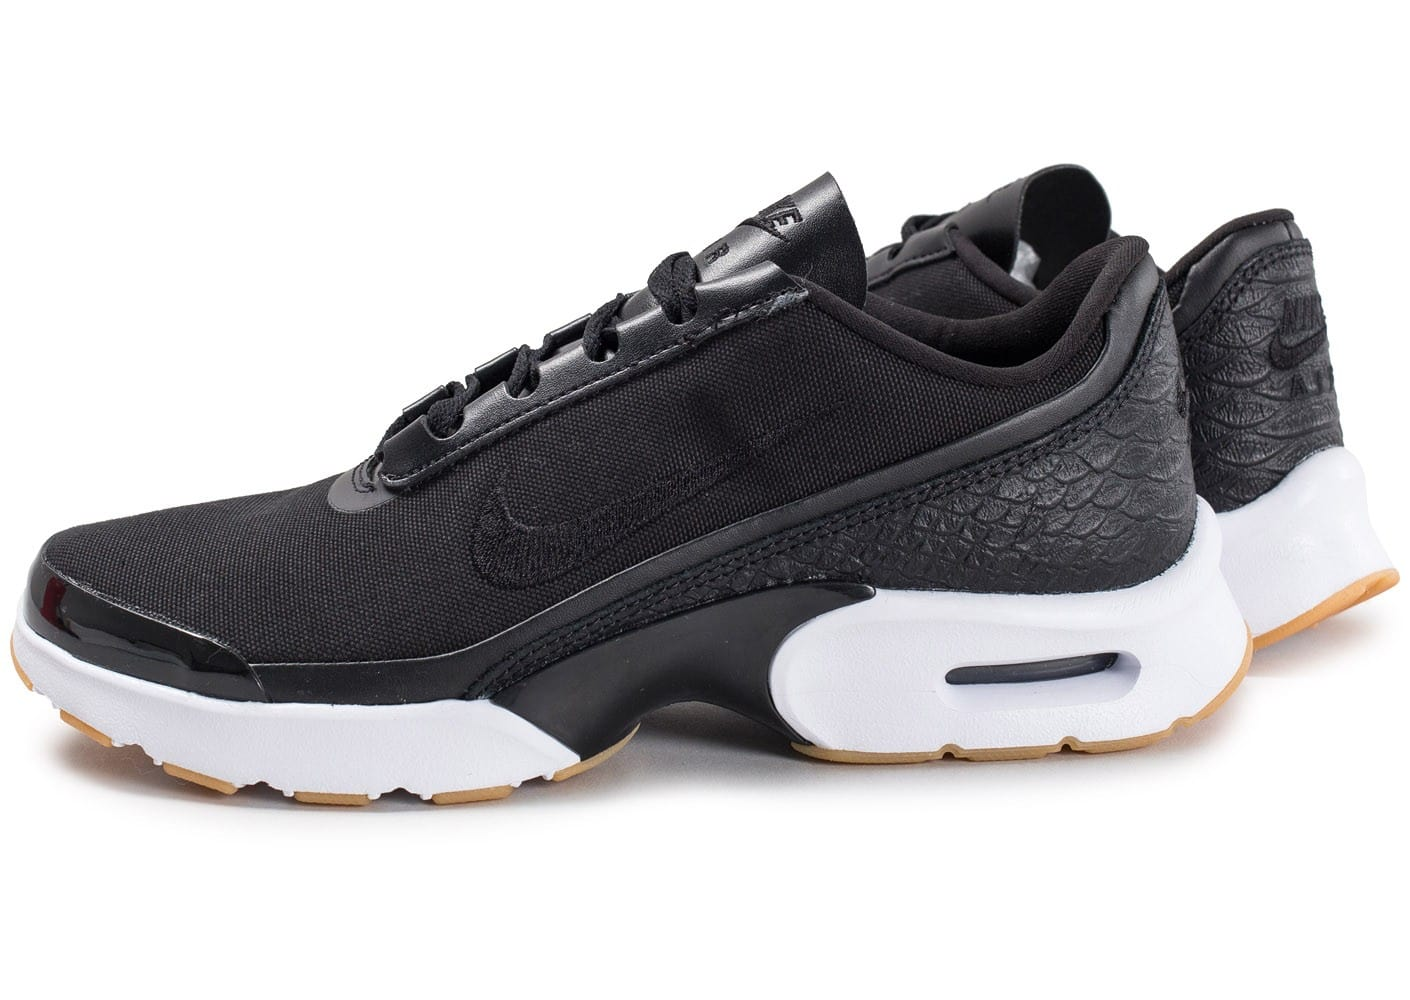 Nike Air Max Jewell SE noir gum Chaussures Baskets femme